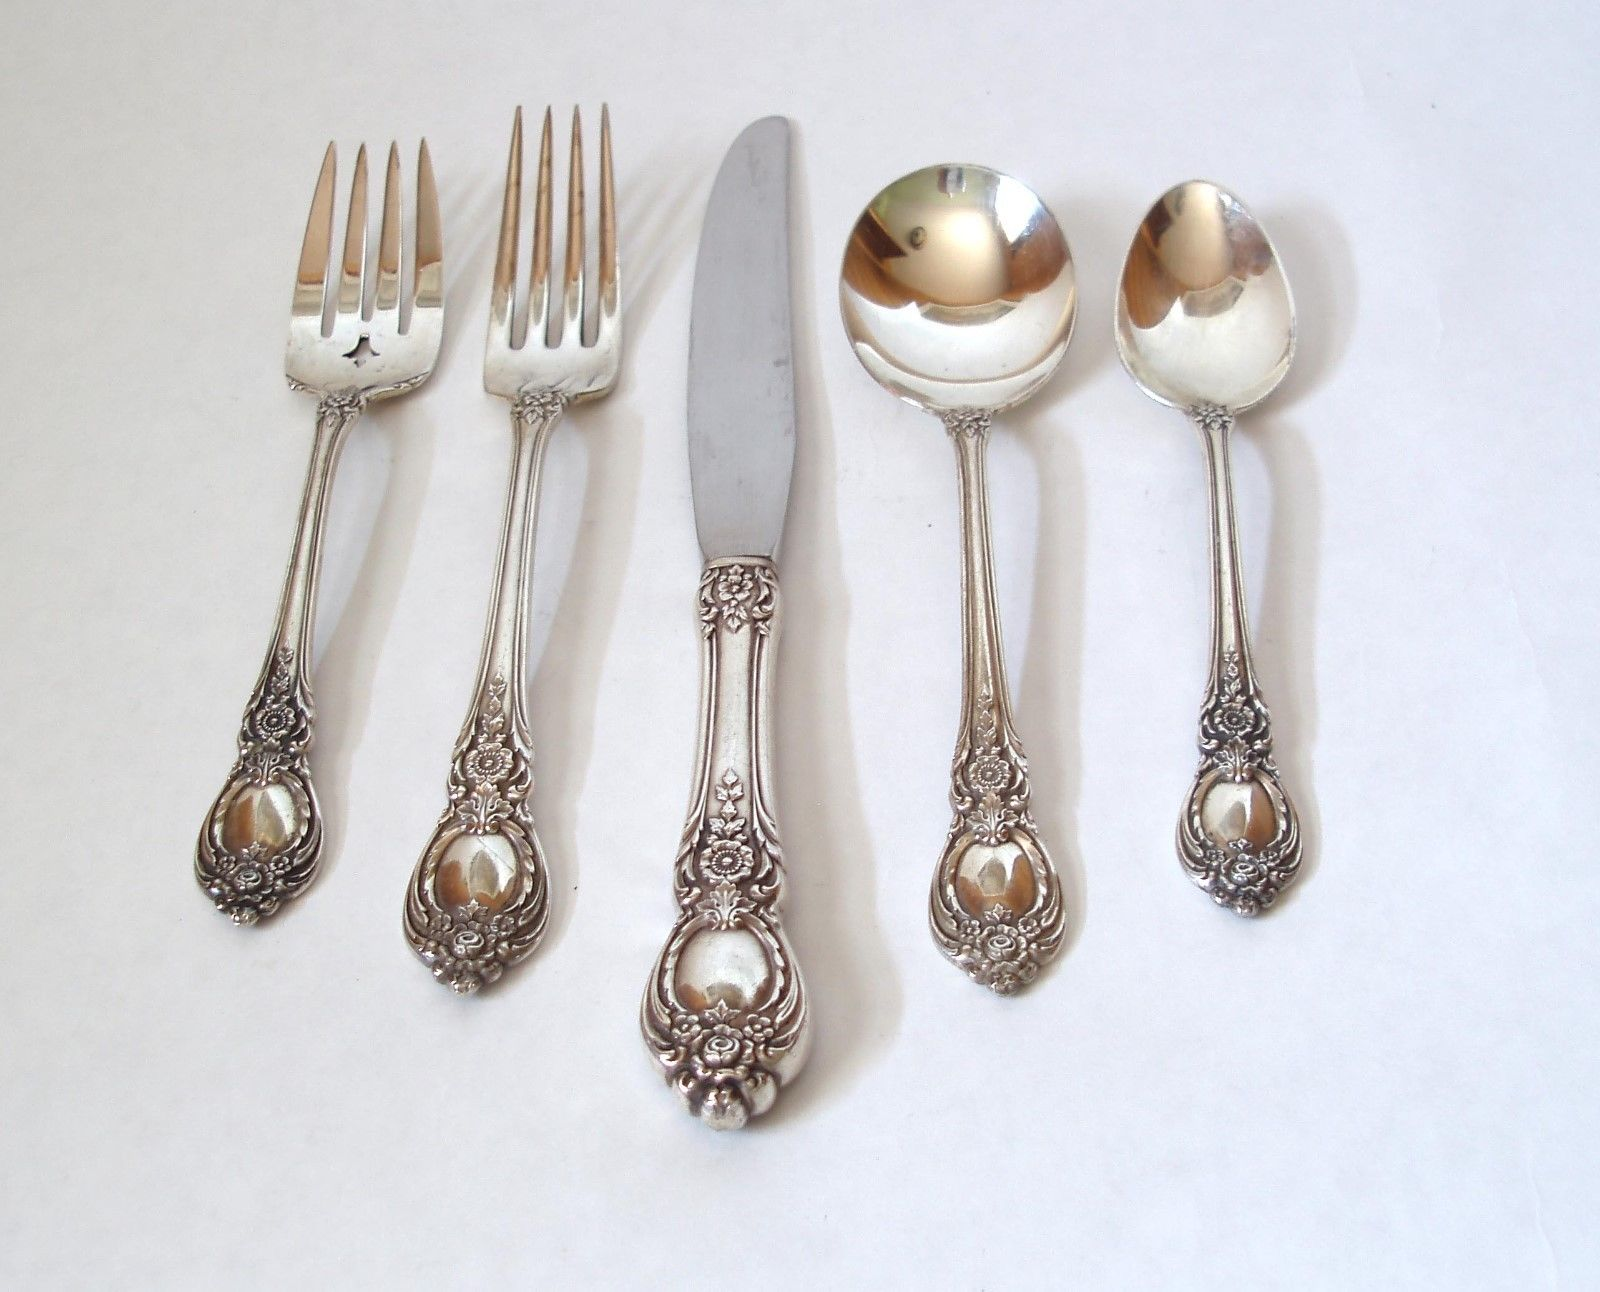 Antique Stanton Hall Silver Flatware